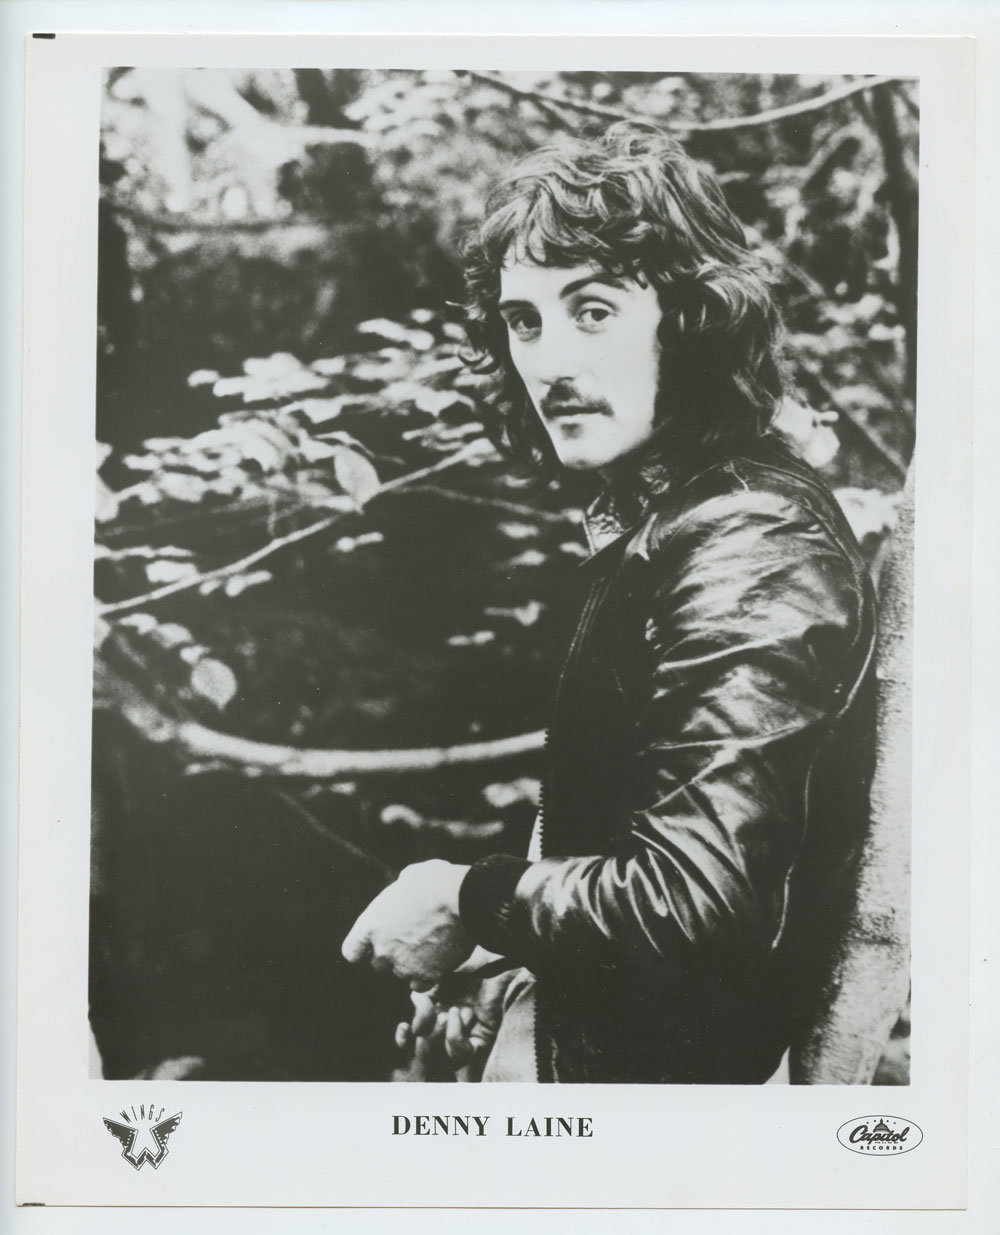 Denny Laine Photo 1971 Publicity Promo Capital Records